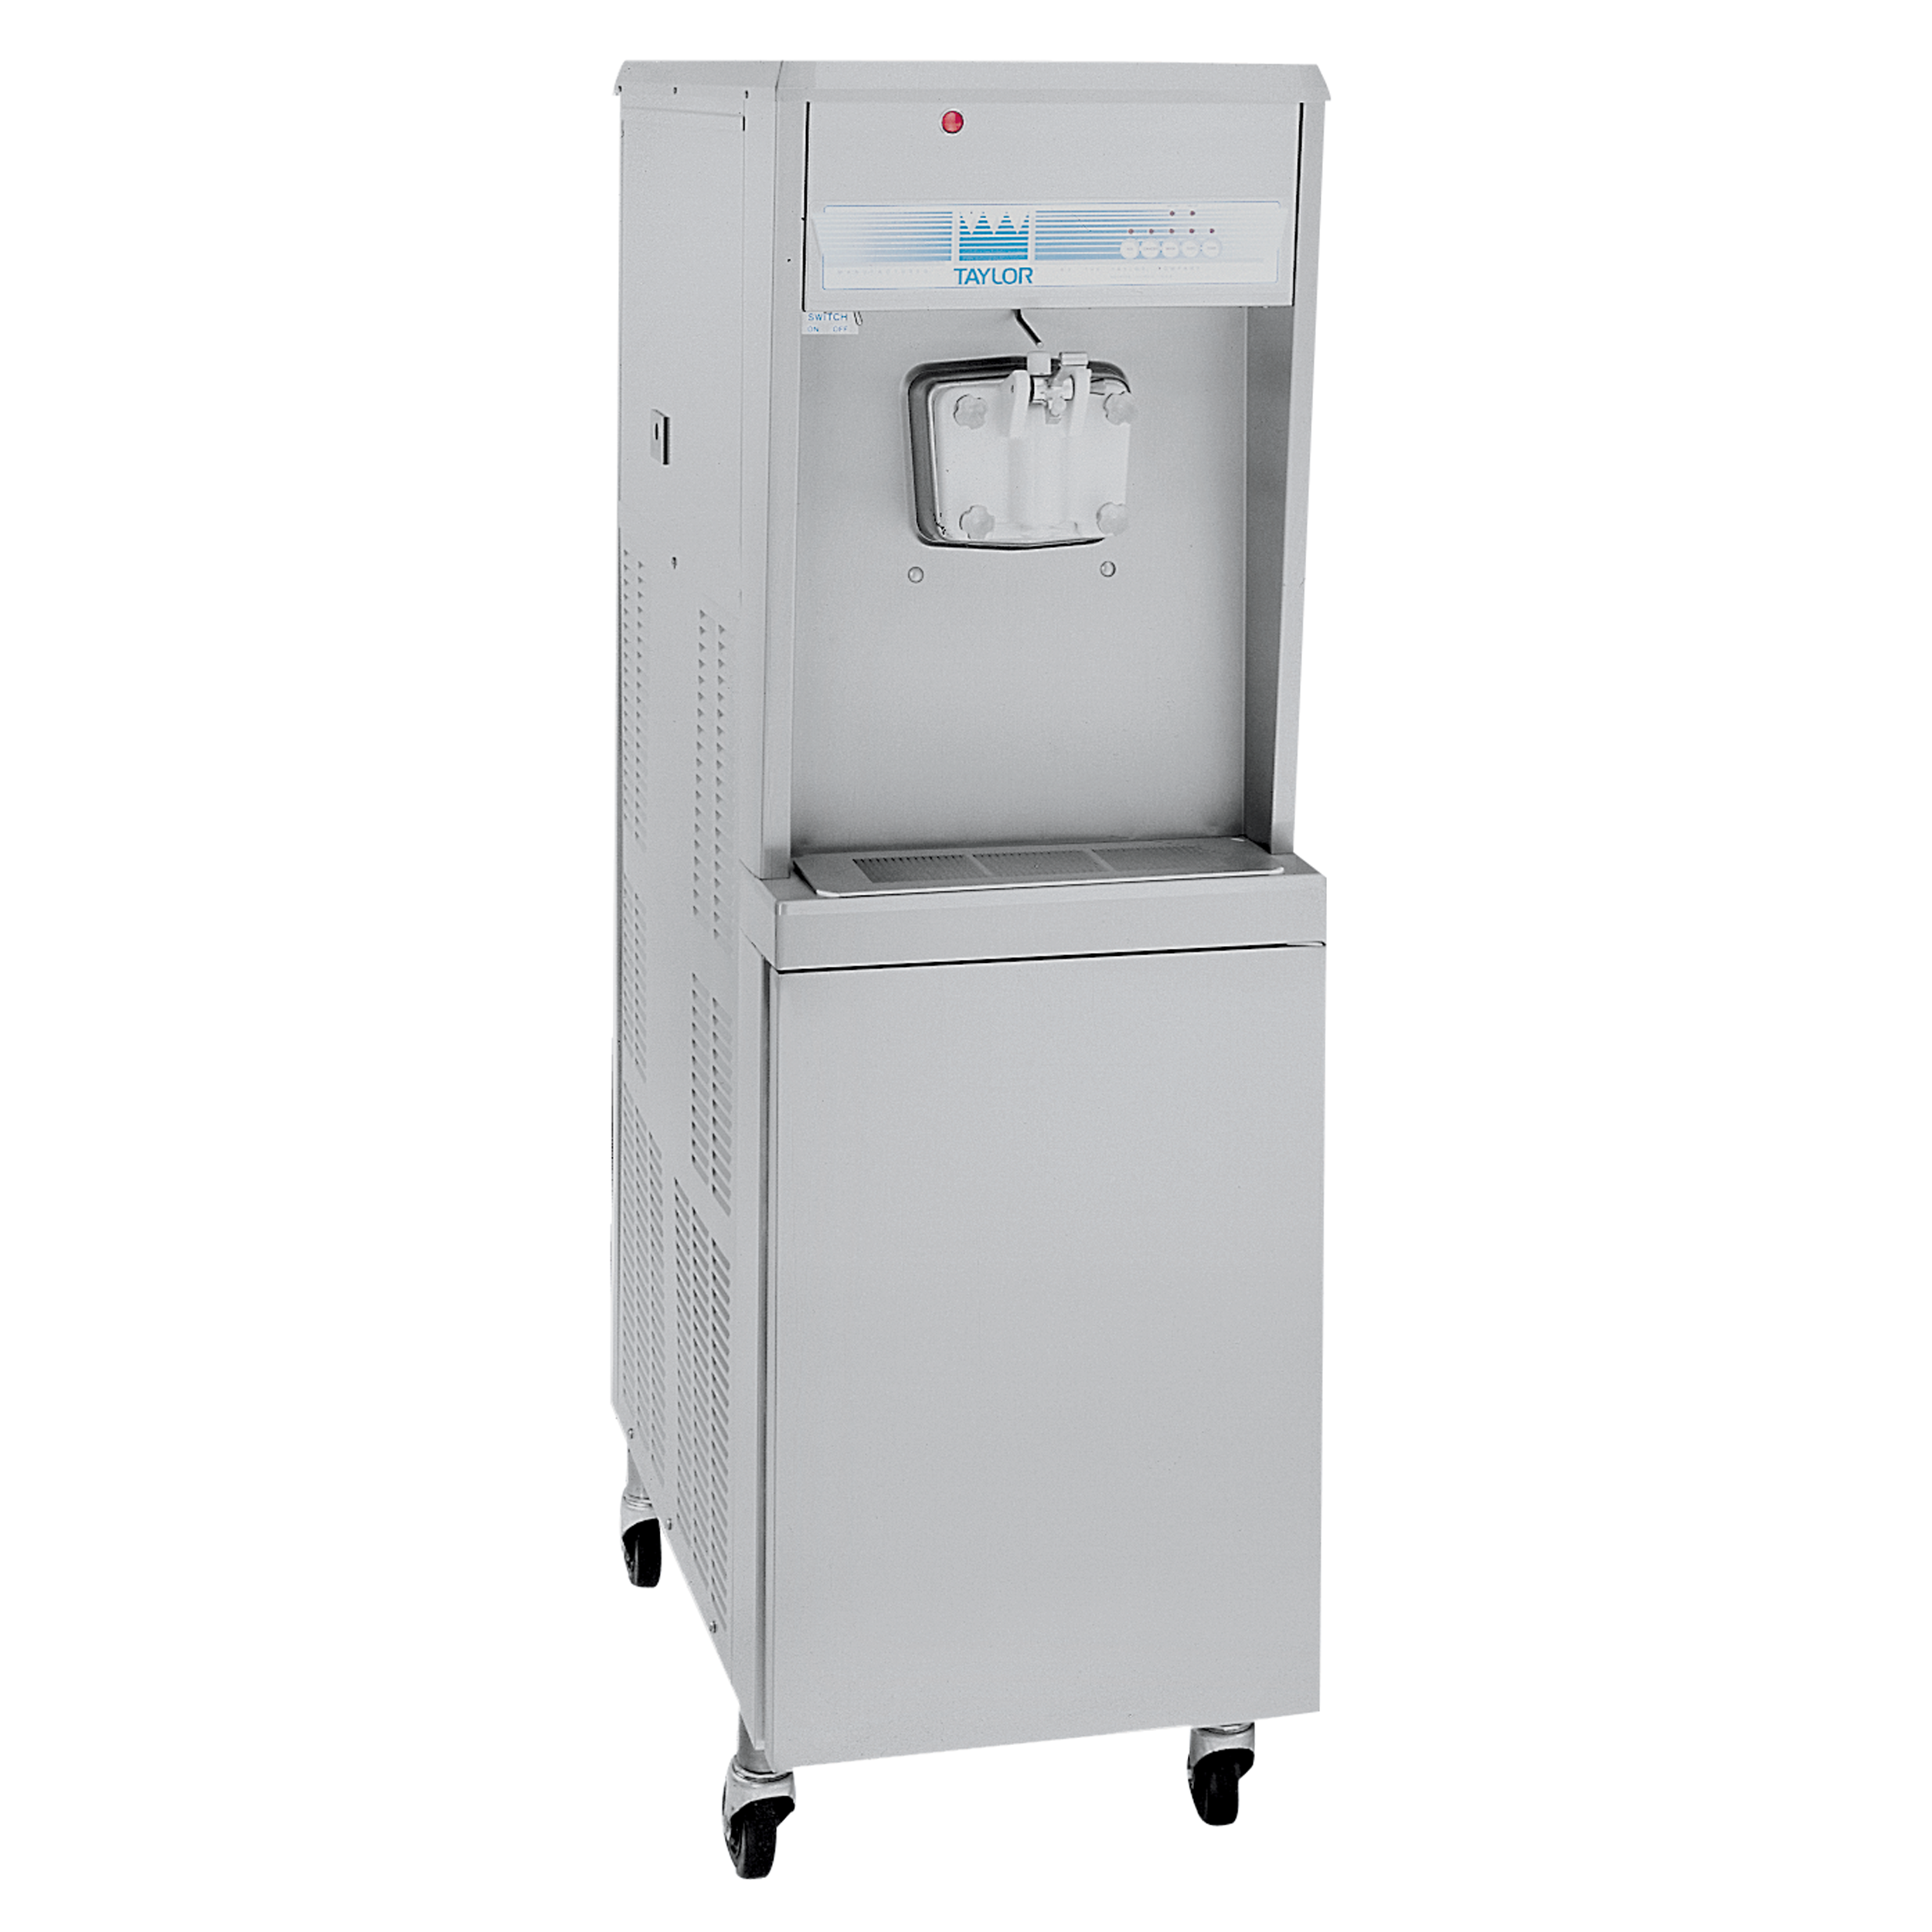 Model 8752    8752 Soft Serve Freezer   Offer all the popular soft serve variations from low or nonfat ice creams to custards, yogurt and sorbet.  KEY SPECIFICATIONS:   Finished Product : Soft Serve   Installation : Floor   Number of Flavors : 1   Freezing Cylinder QTY : 1   Freezing Cylinder Size (qt/l) : 3.4/3.2